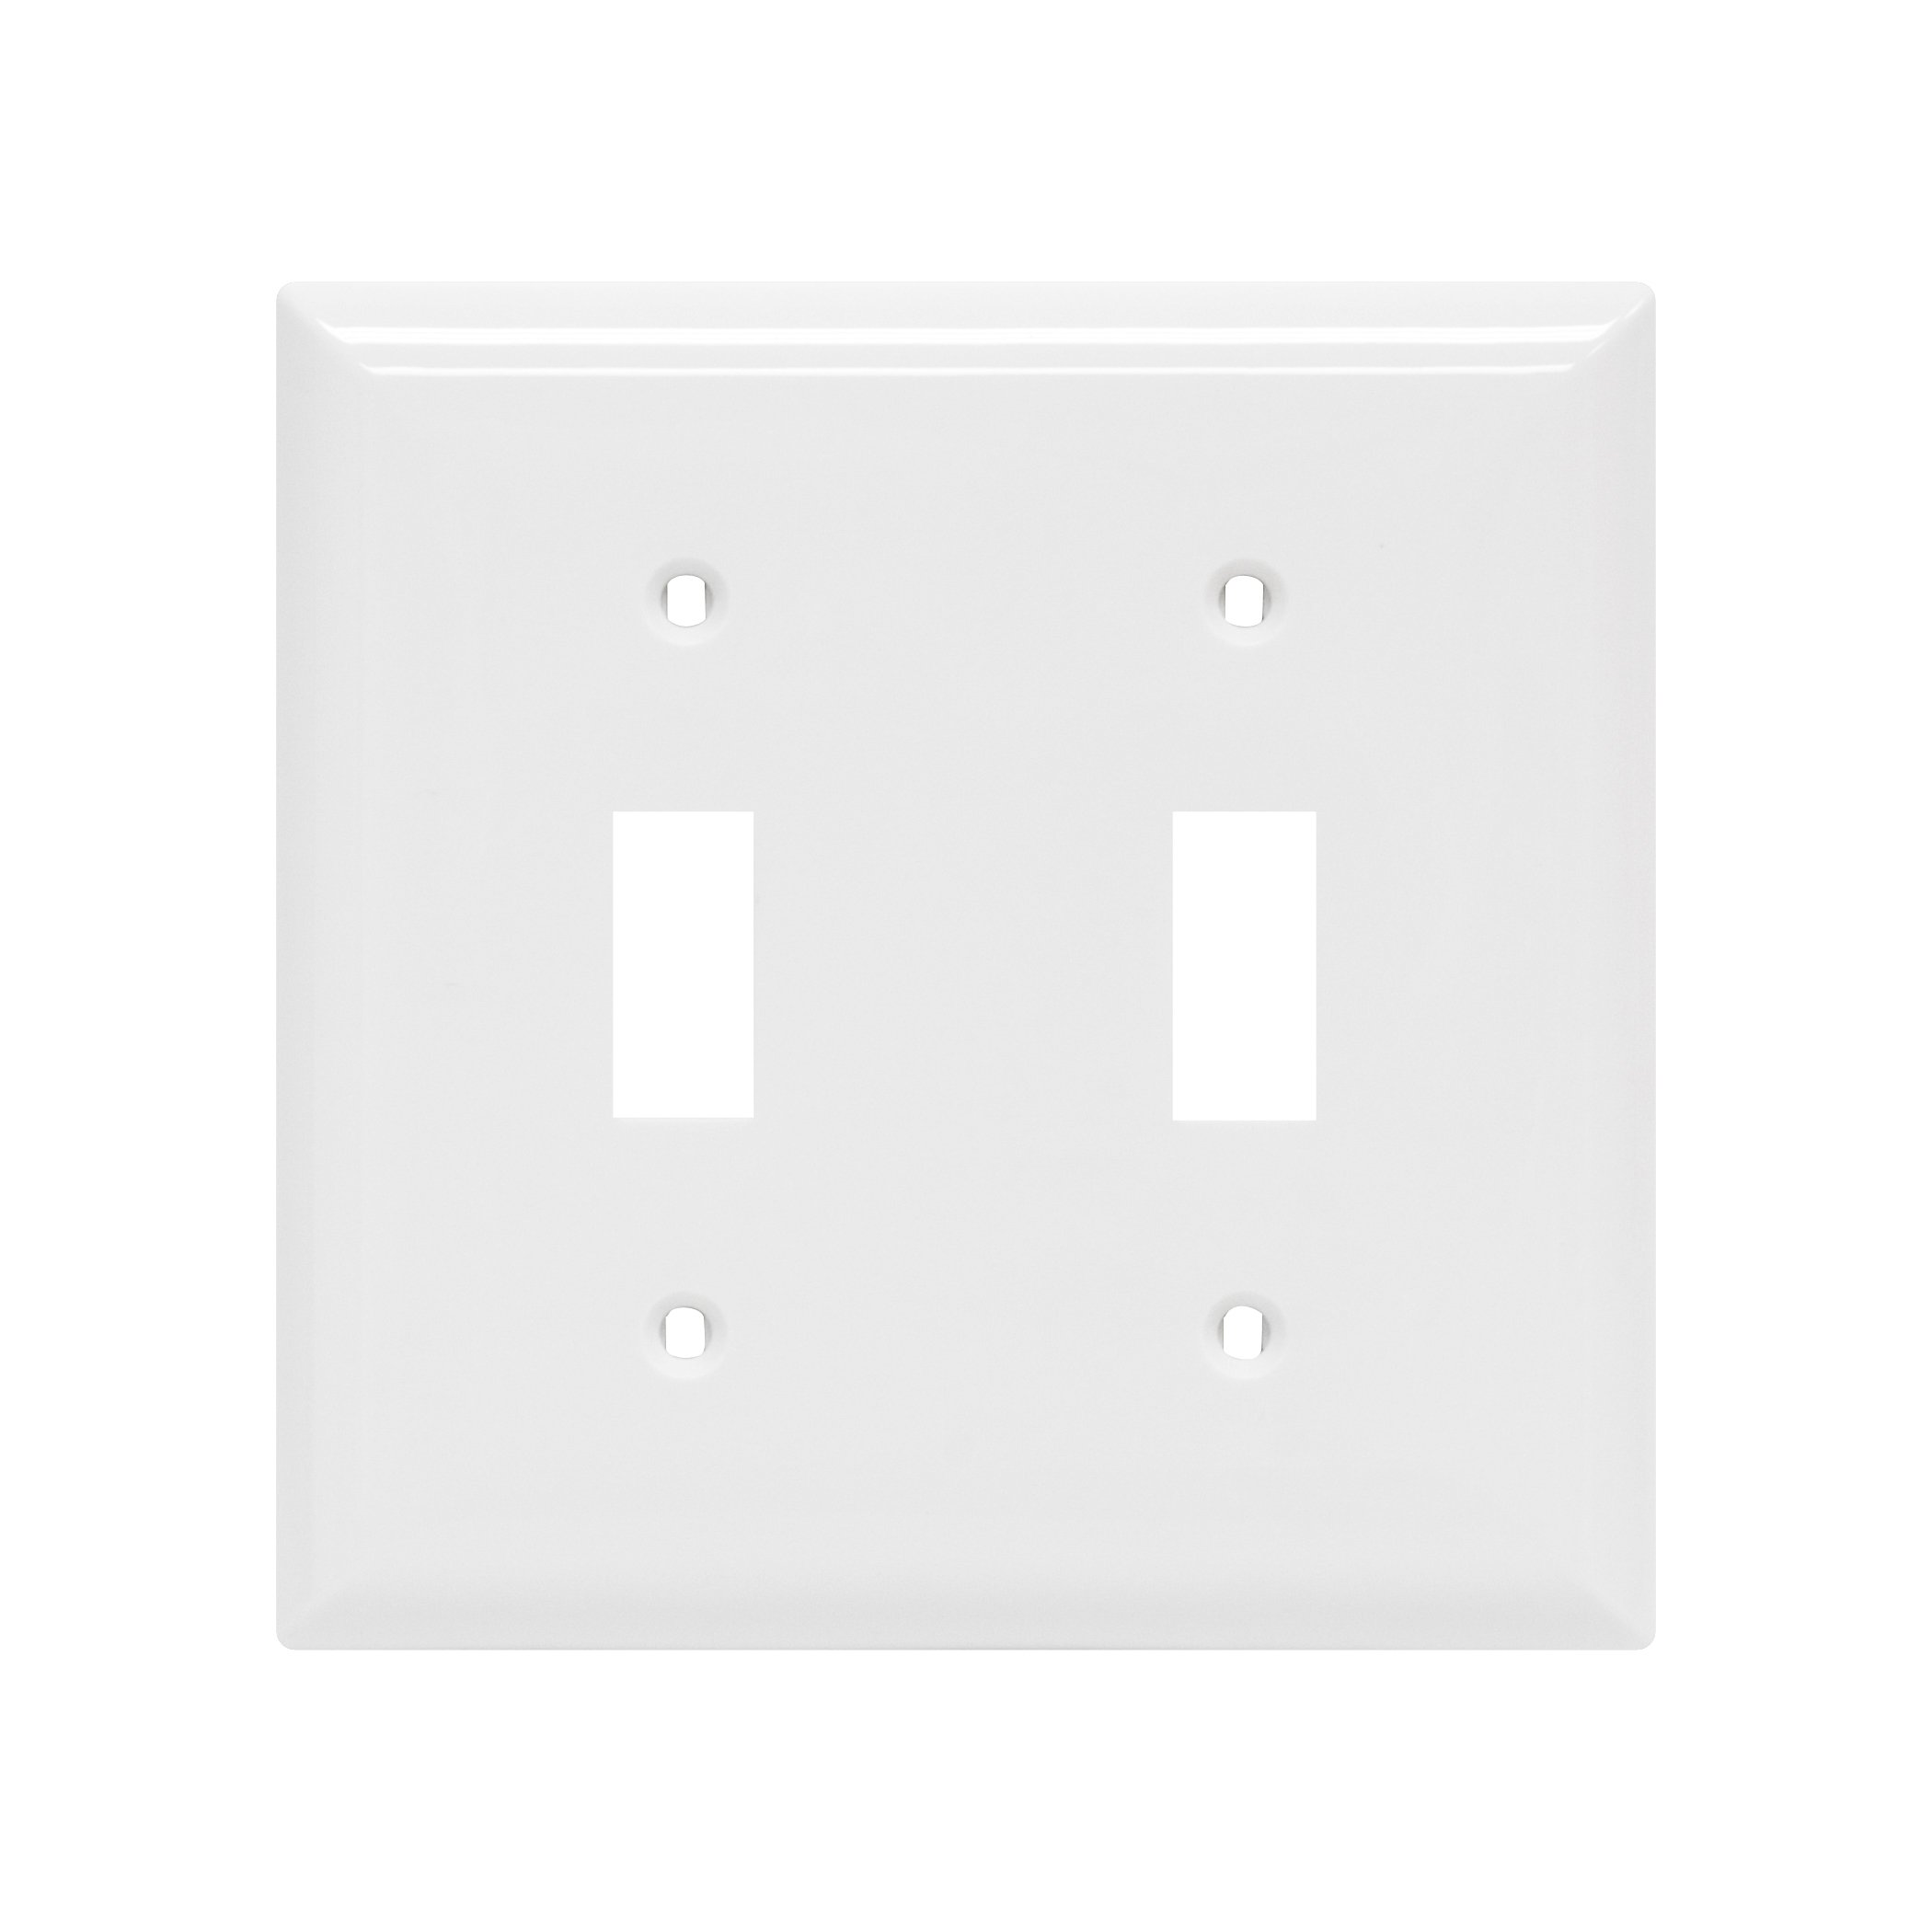 Power Gear Double Toggle Switch Wallplate, White, Unbreakable Nylon, Screws Included, UL Listed, 40025 by Power Gear (Image #1)